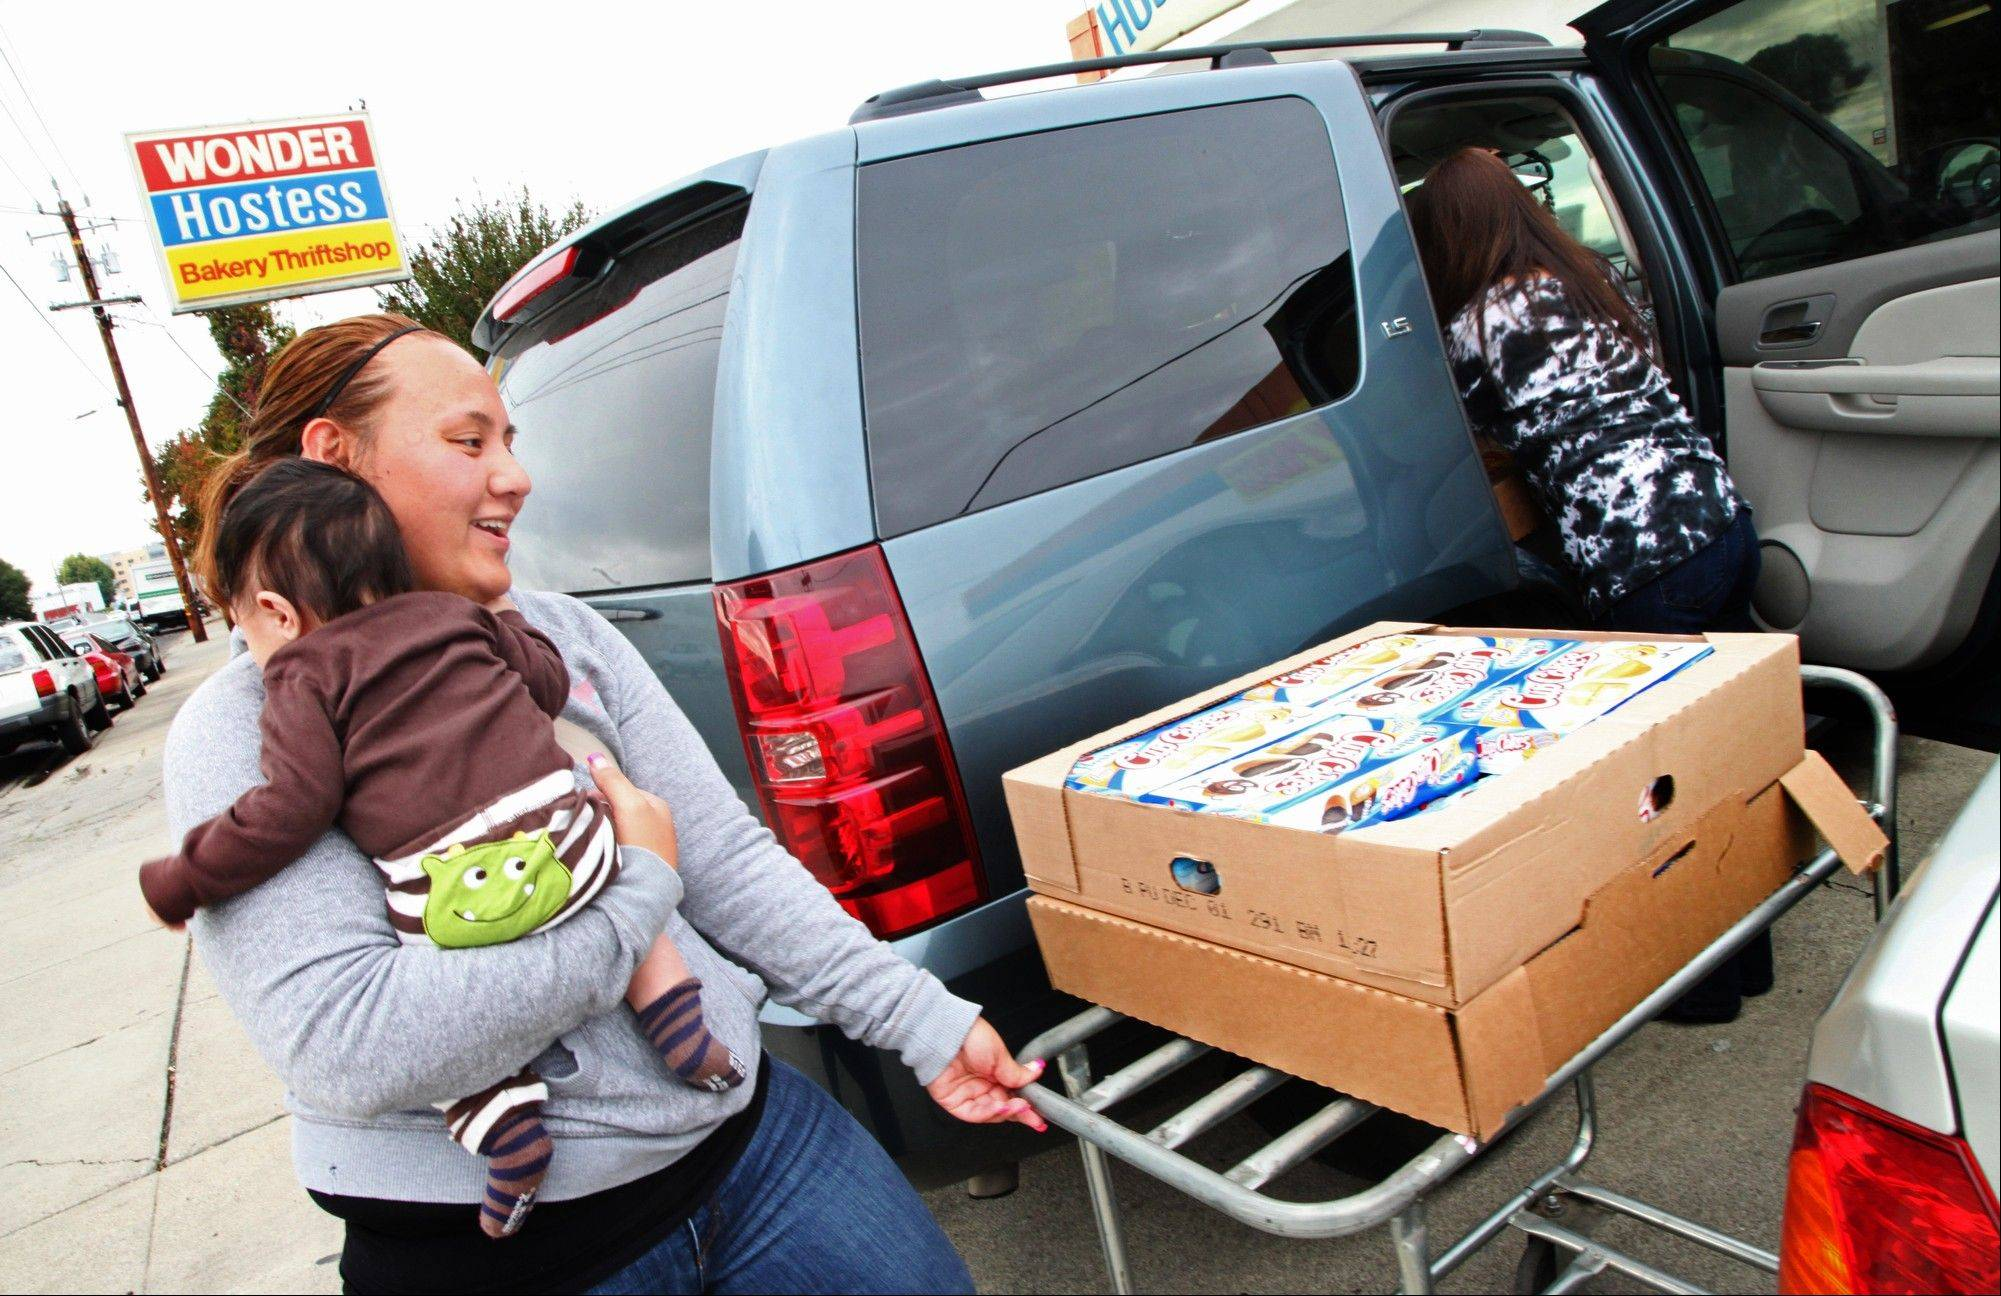 Vanessa Fifita, from San Leandro, left, puts boxes of Hostess products into her car Friday with the help of a worker outside the Hostess Bakery Thriftshop in San Leandro, Calif. on Friday, Nov. 16, 2012. With the announcement that the Hostess bakery is join out of business, Fifita's friends and relatives urged her to go to the thrift shop to pick up as many of the Hostess bakery products as possible.